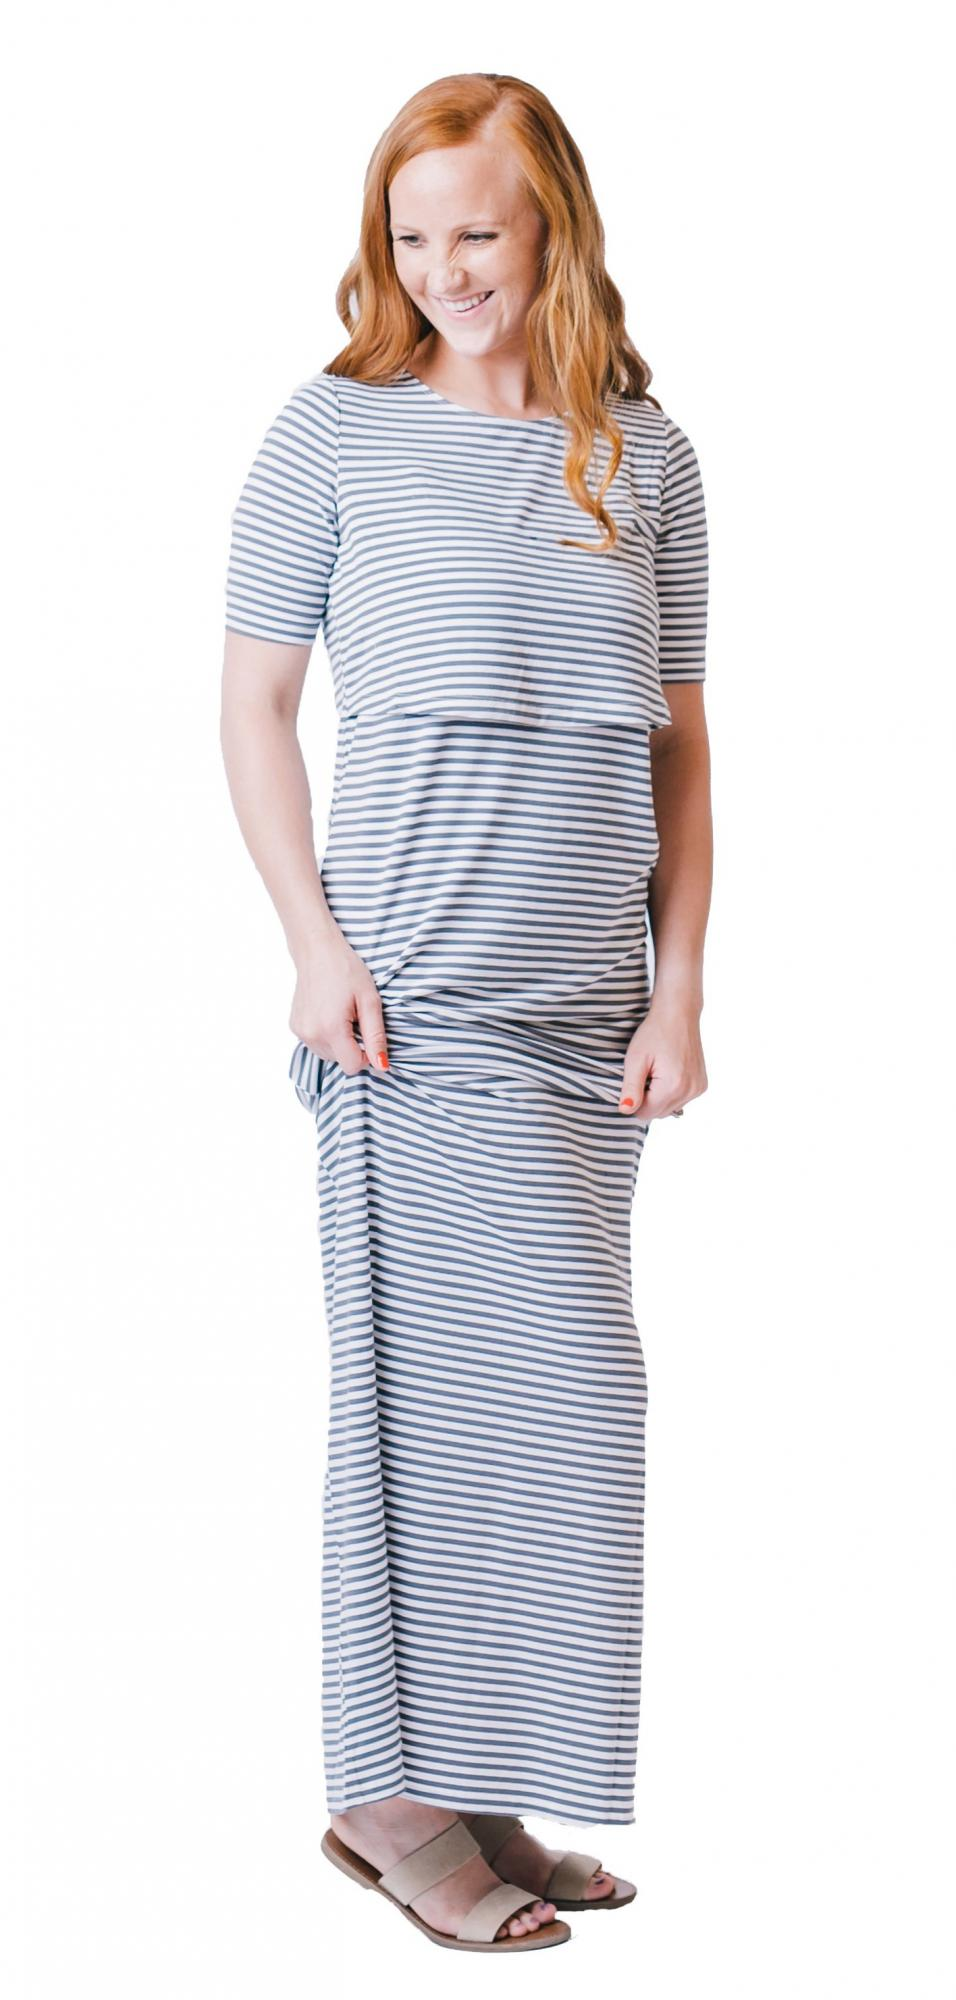 undercover-mama-nursing-dress-striped-5.jpg